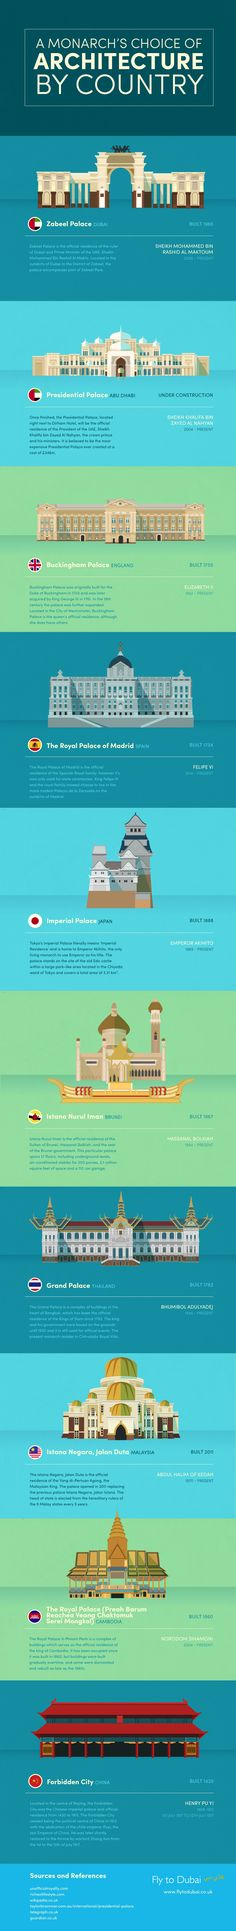 A Monarch's Choice of Architecture #Infographic #Architecture